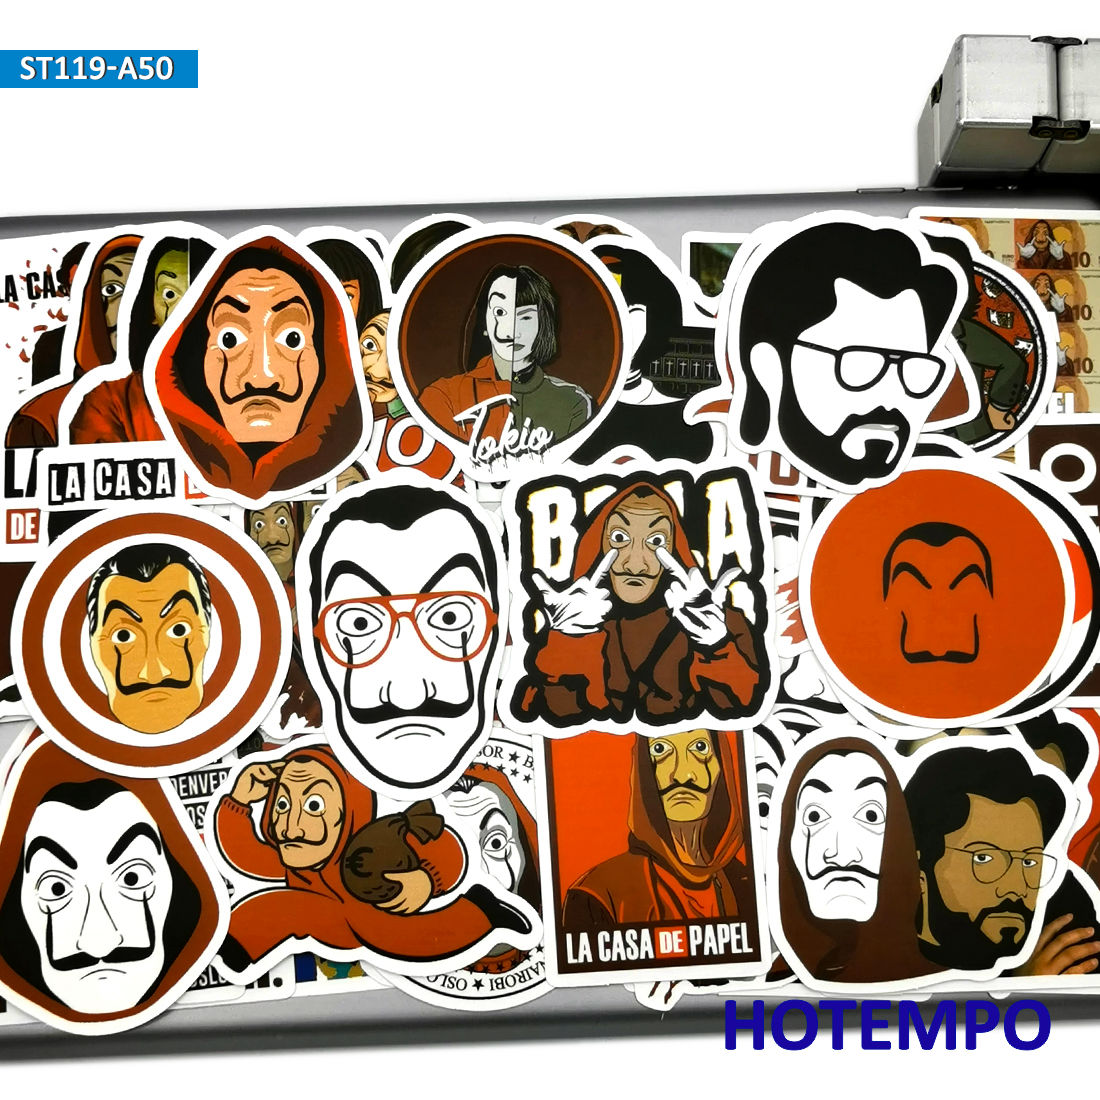 50pcs House Of Paper TV Series Suspense Style Stickers Money Heist On Mobile Phone Laptop Luggage Skateboard Case Decal Stickers